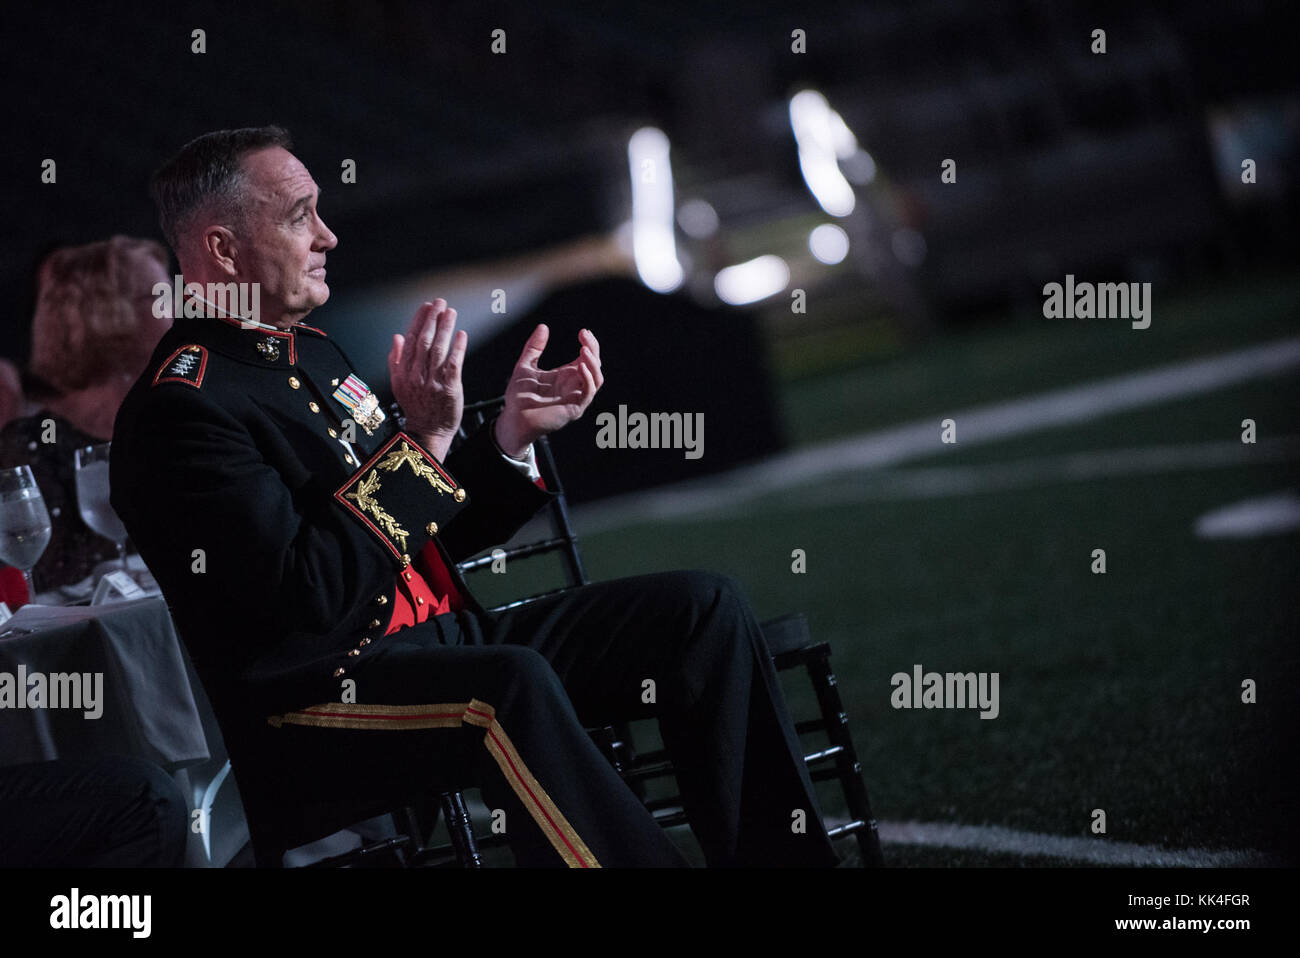 U.S. Marine Corps Gen. Joseph F. Dunford, Jr., chairman of the Joint Chiefs of Staff, applauds during the U.S. Marine Stock Photo